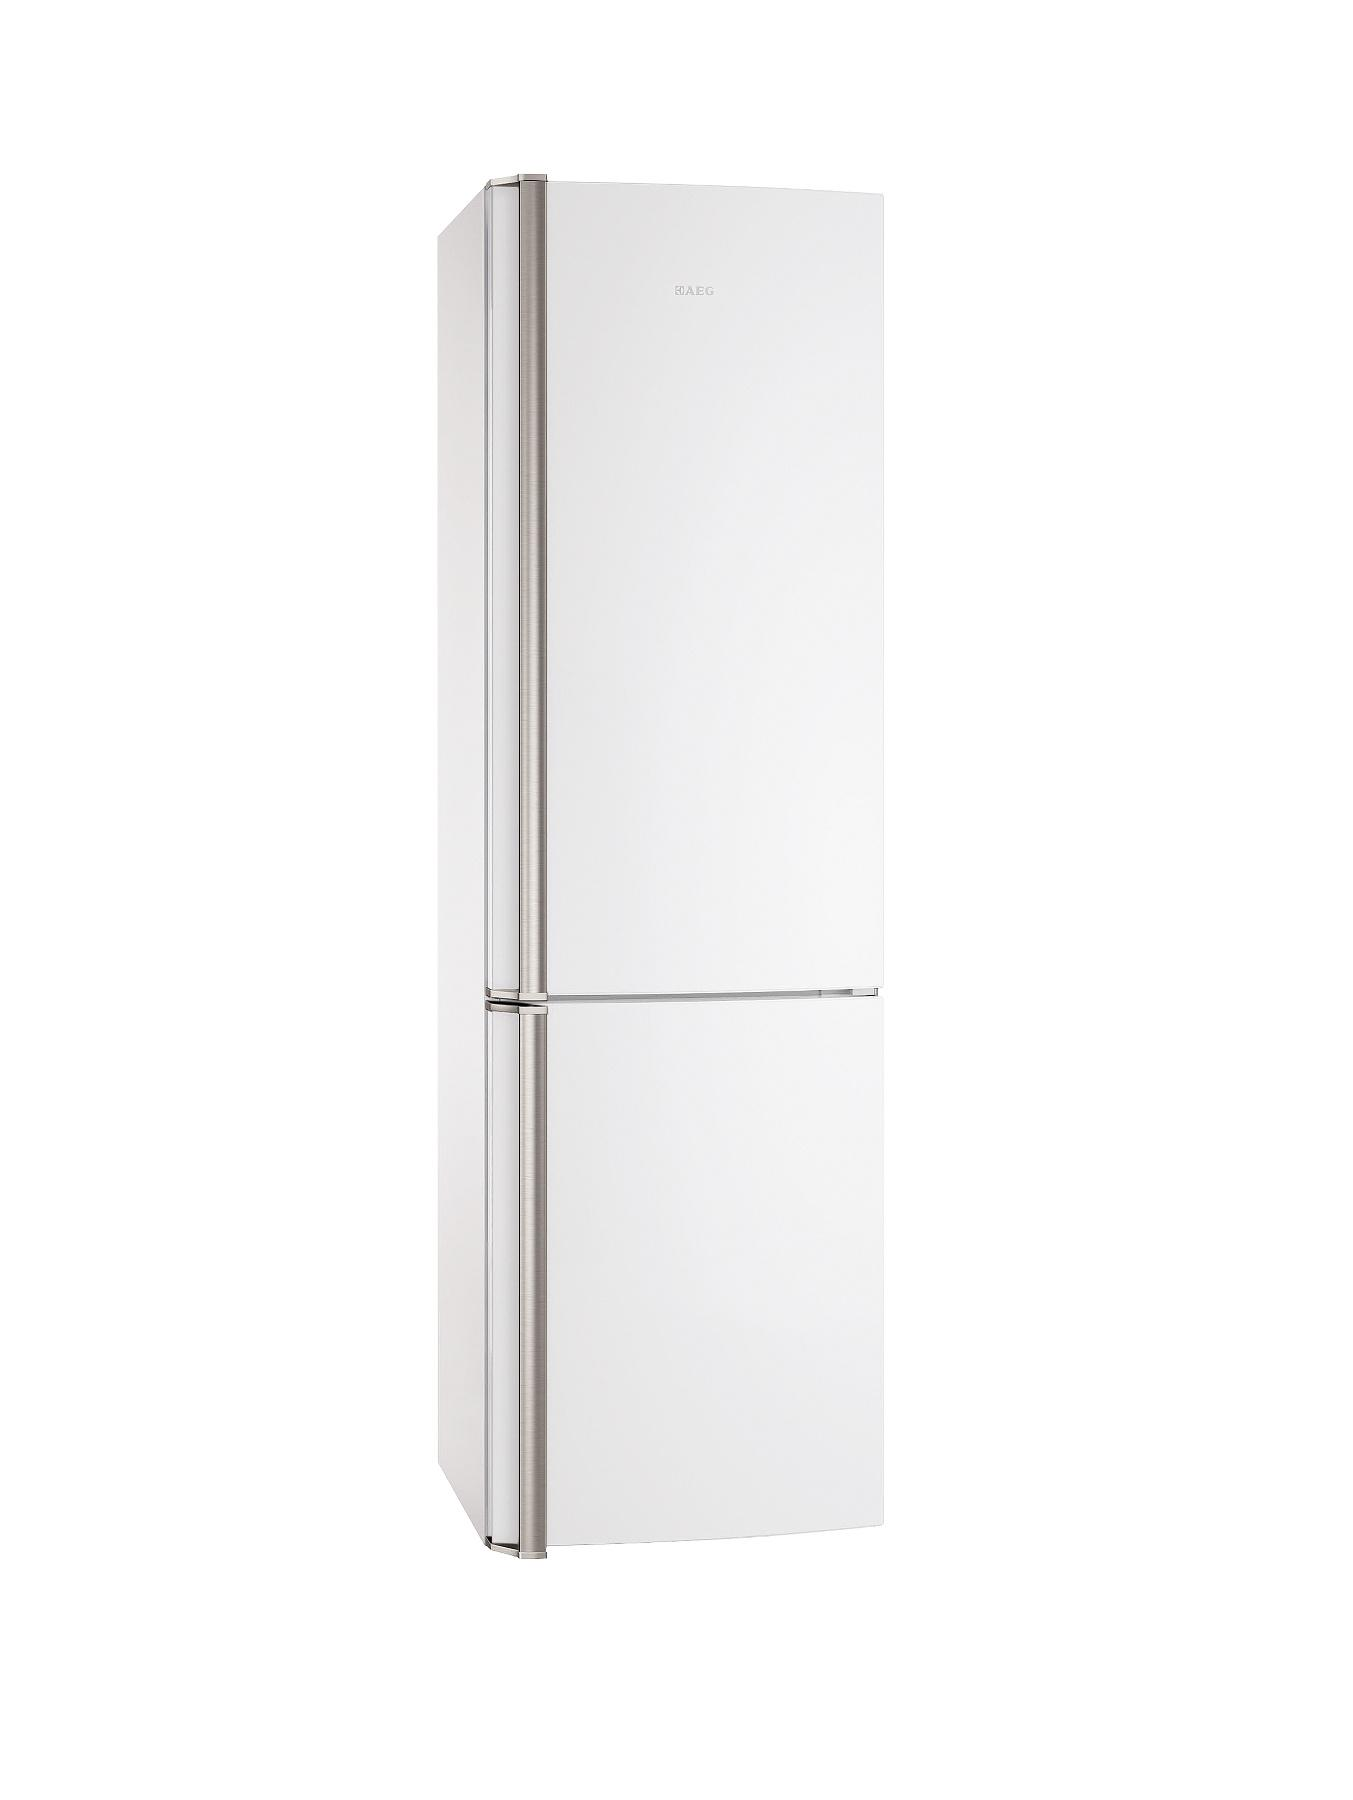 AEG S83420CTW2 Frost Free Fridge Freezer - White